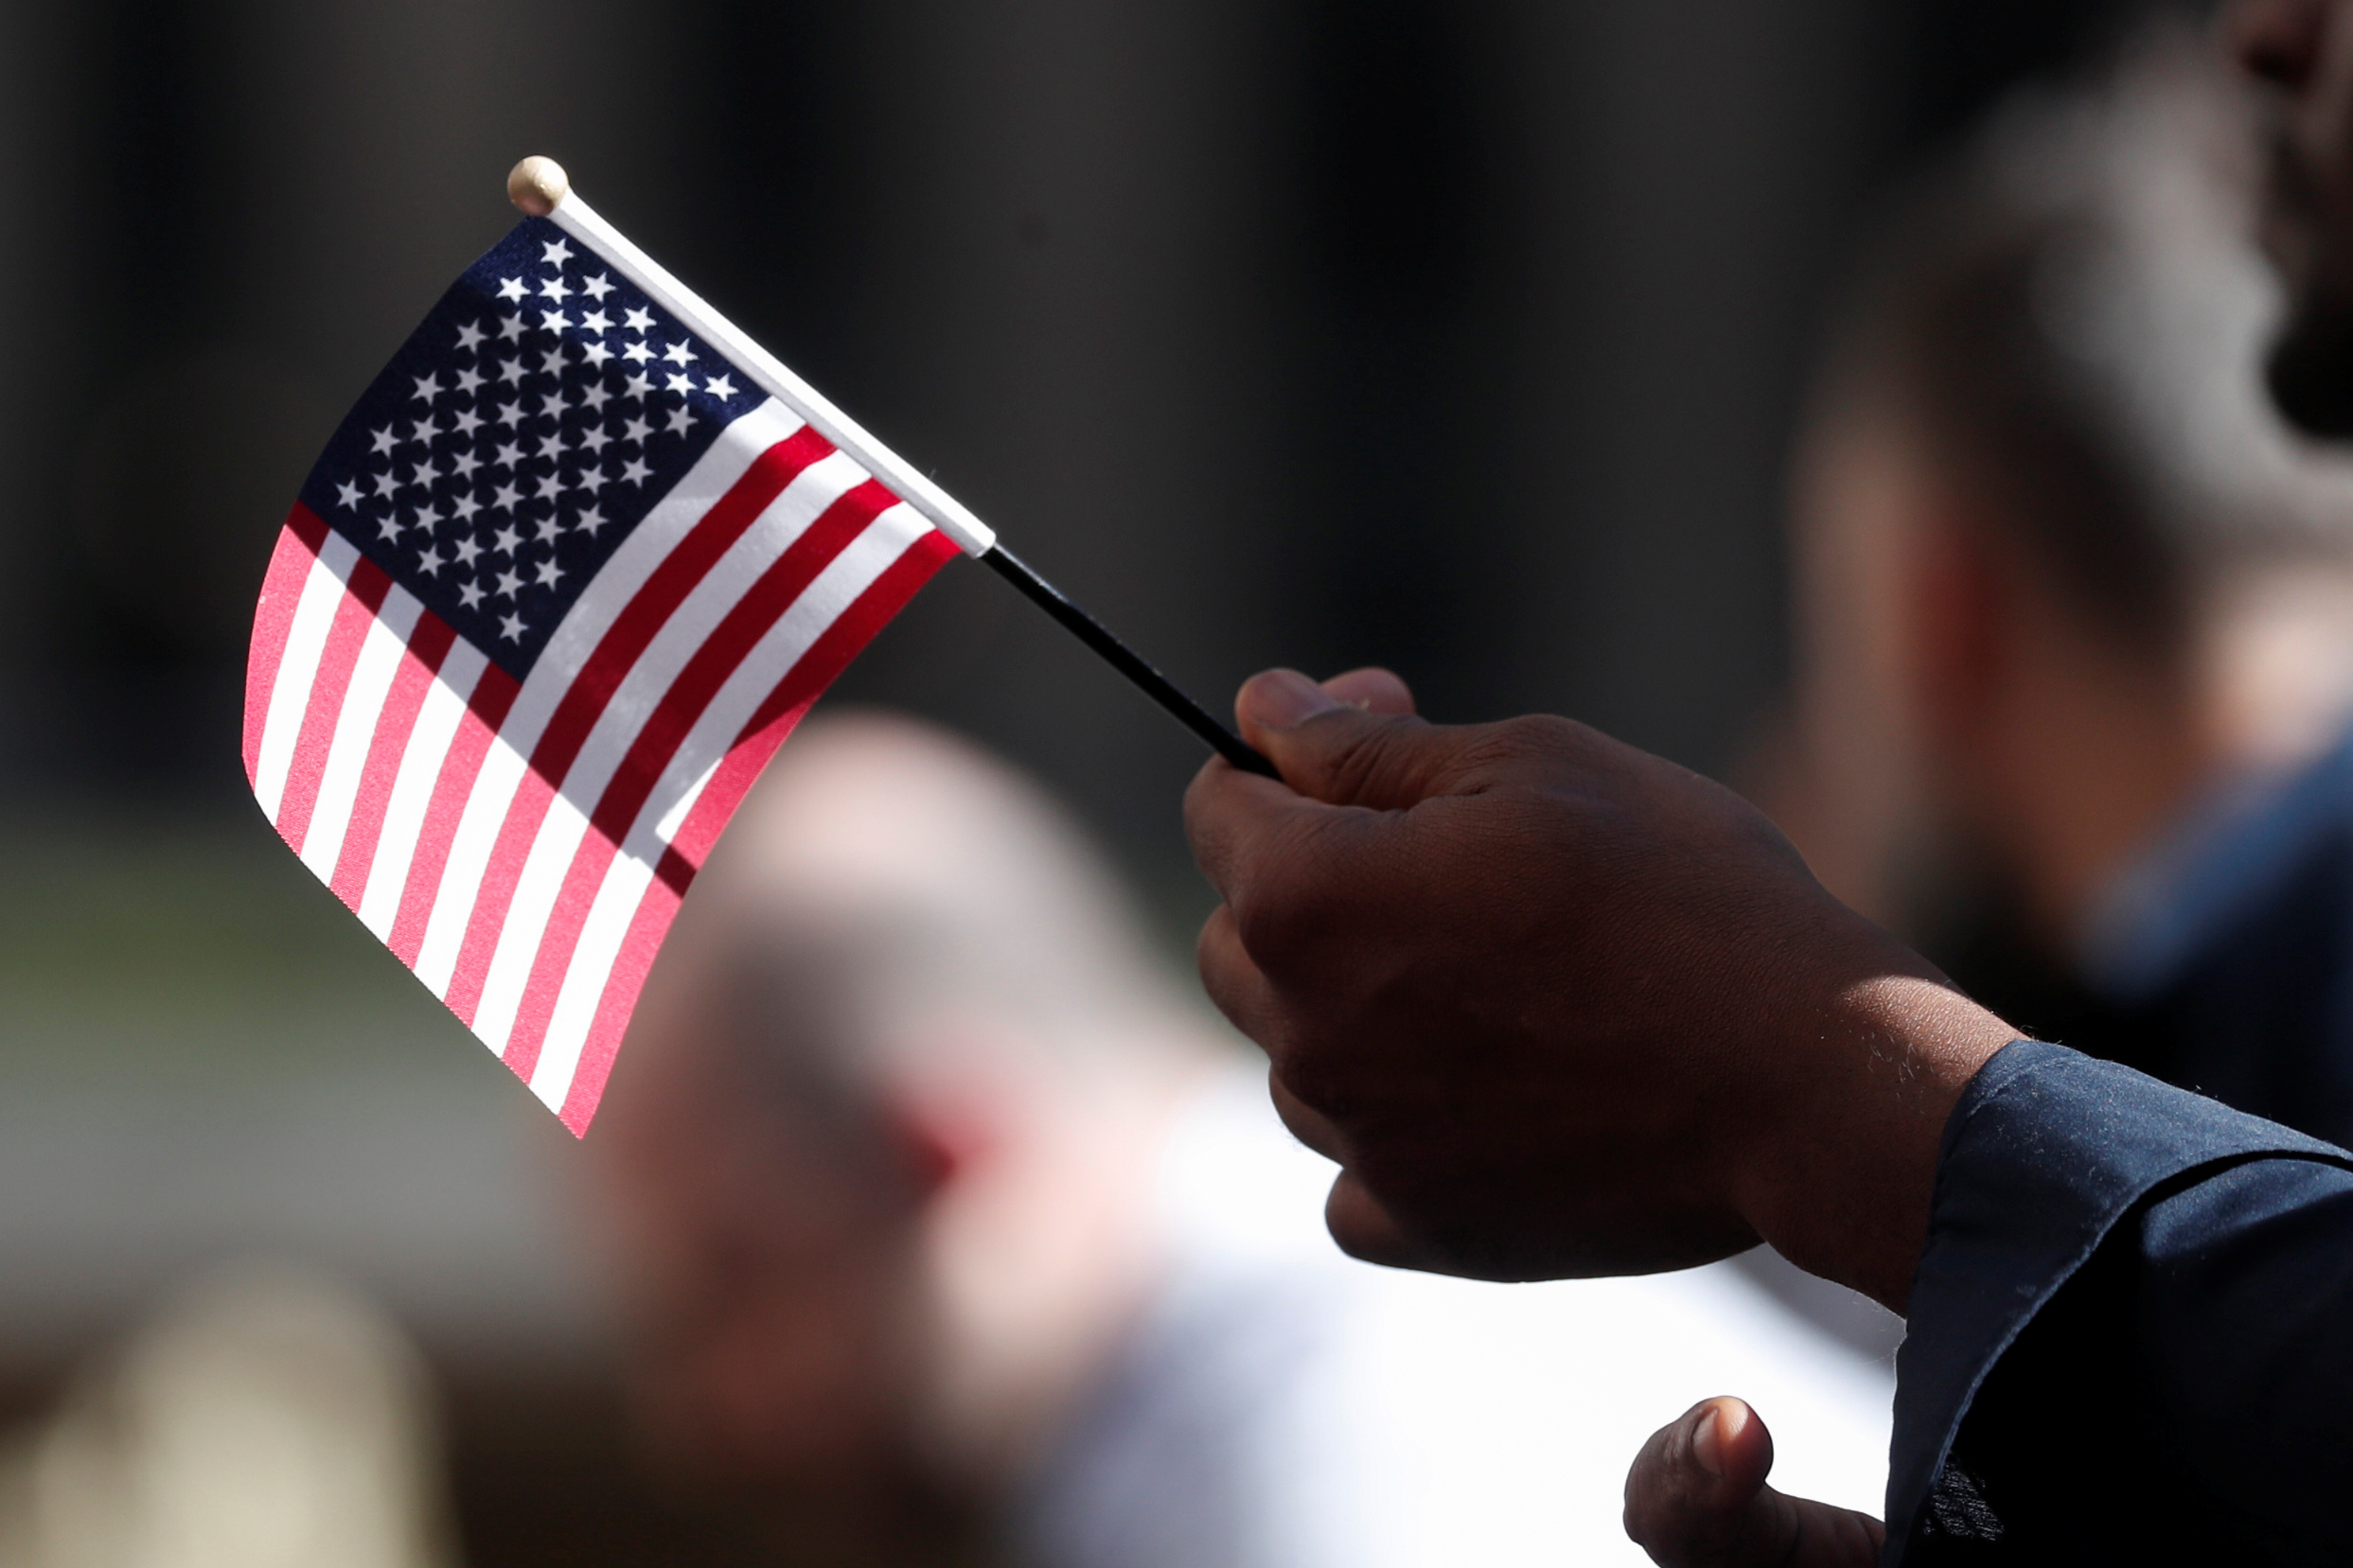 A citizenship candidate holds a flag during the U.S. Citizenship and Immigration Services (USCIS) naturalization ceremony at Rockefeller Plaza in New York City, U.S., September 17, 2019. REUTERS/Shannon Stapleton